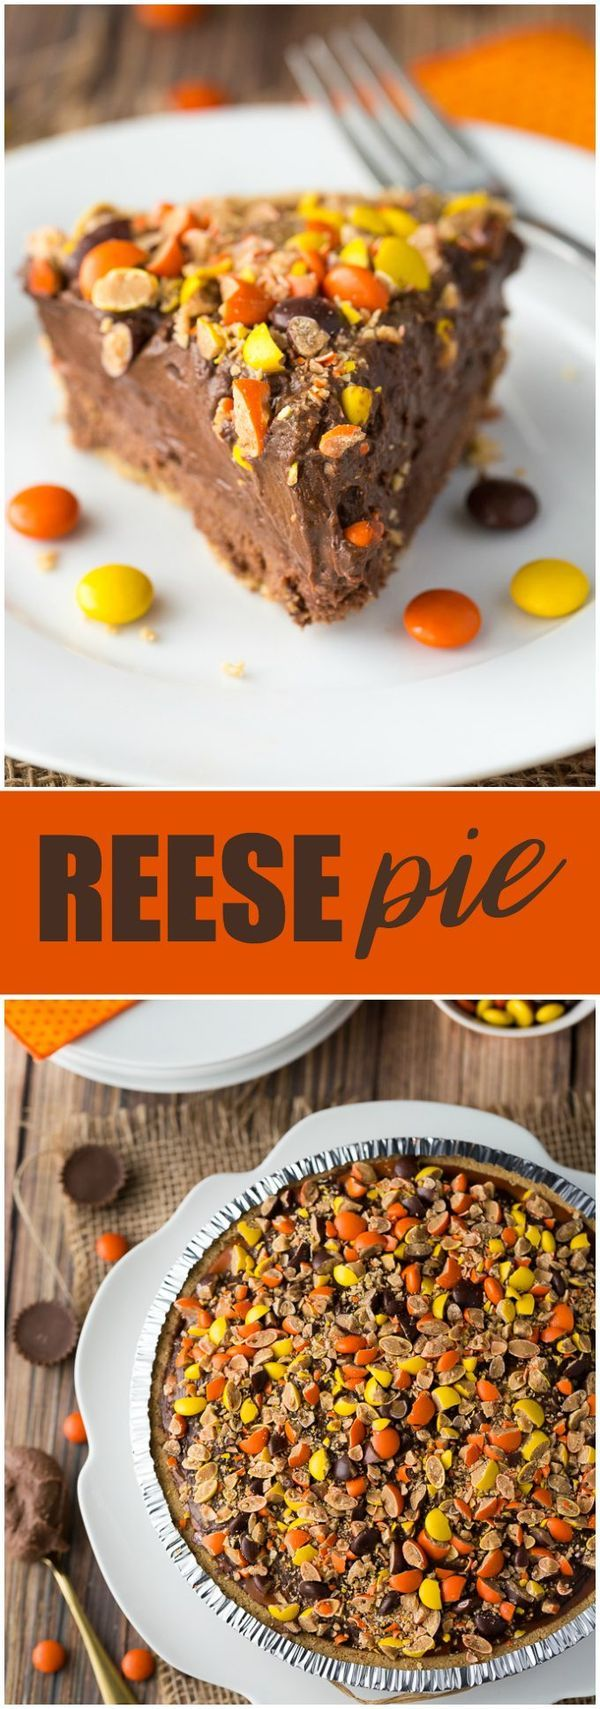 REESE Pie - This decadent no-bake dessert is all about REESE! It has a thick rich layer of REESE Spreads followed by a layer of REESE Peanut Butter Cups. Top that with a creamy, smooth chocolate/peanut butter pudding layer and a REESE'S Pieces colorful finish.